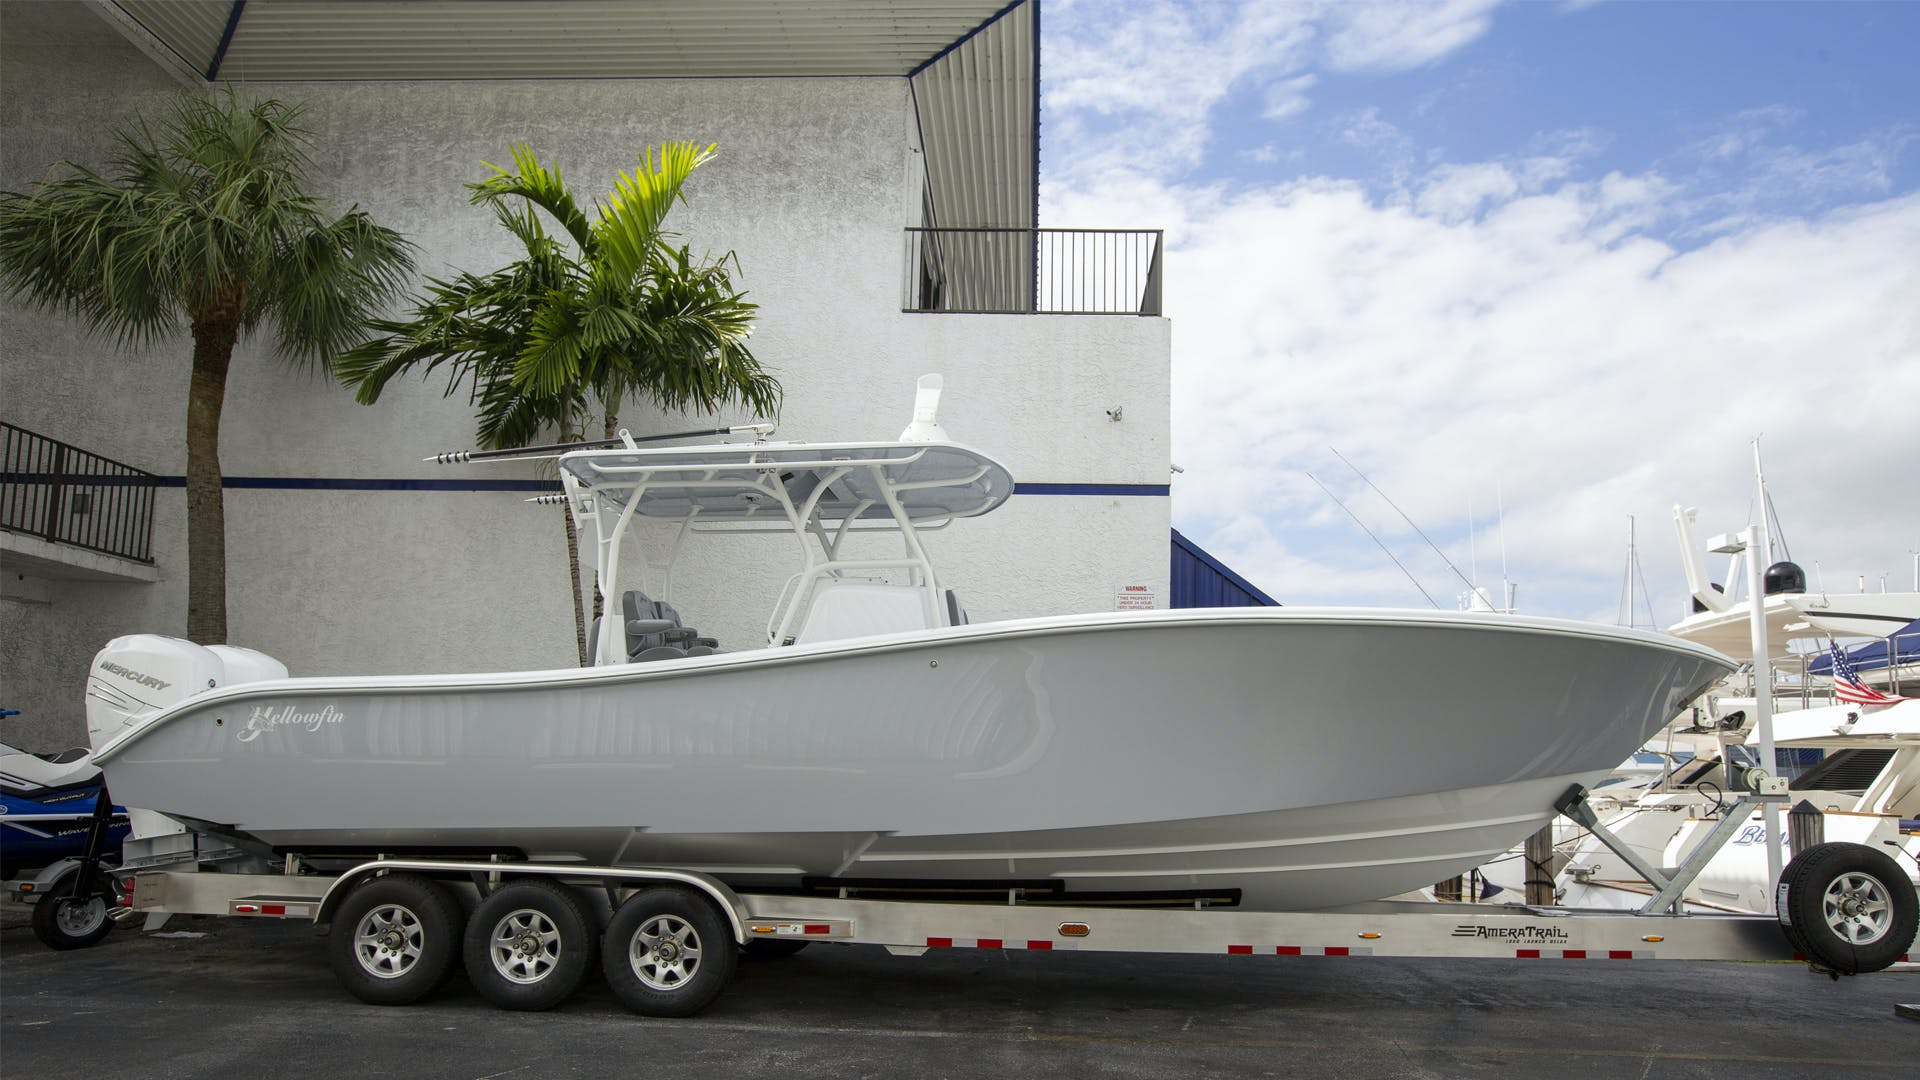 2021 Yellowfin 34' 34 Offshore 34 Offshore   In Stock Now | Picture 1 of 18